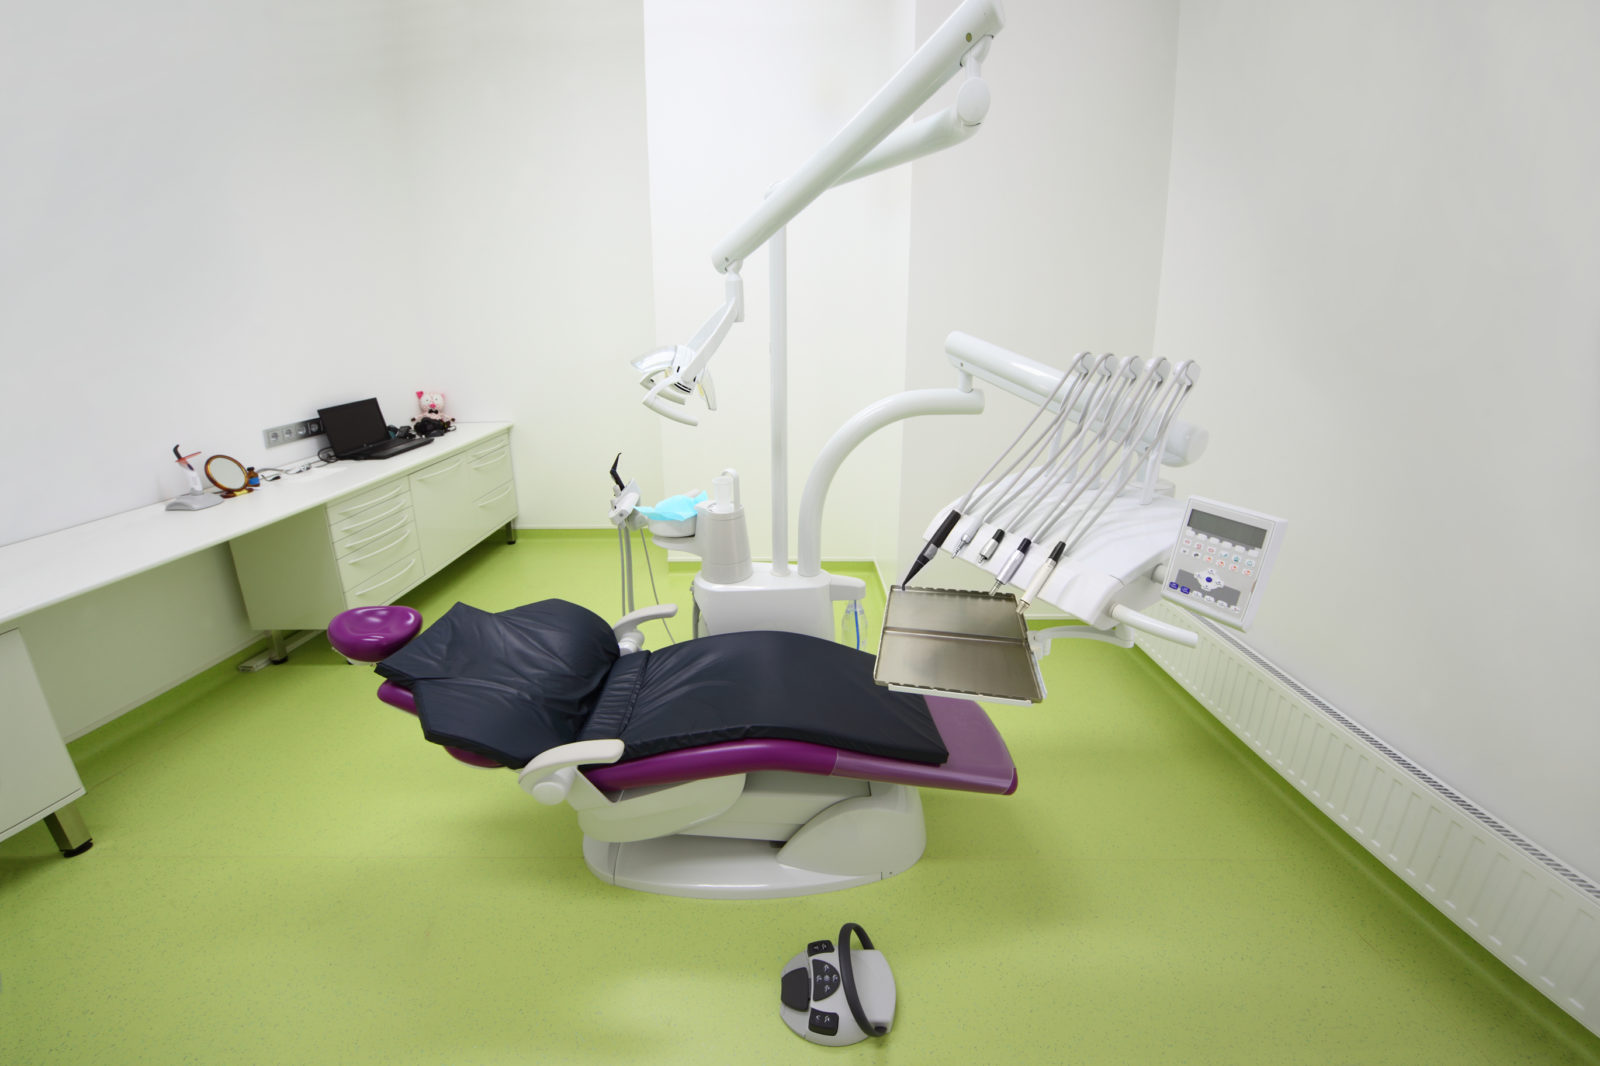 http://www.dreamstime.com/stock-photo-empty-dental-clinic-chair-patient-image26337650